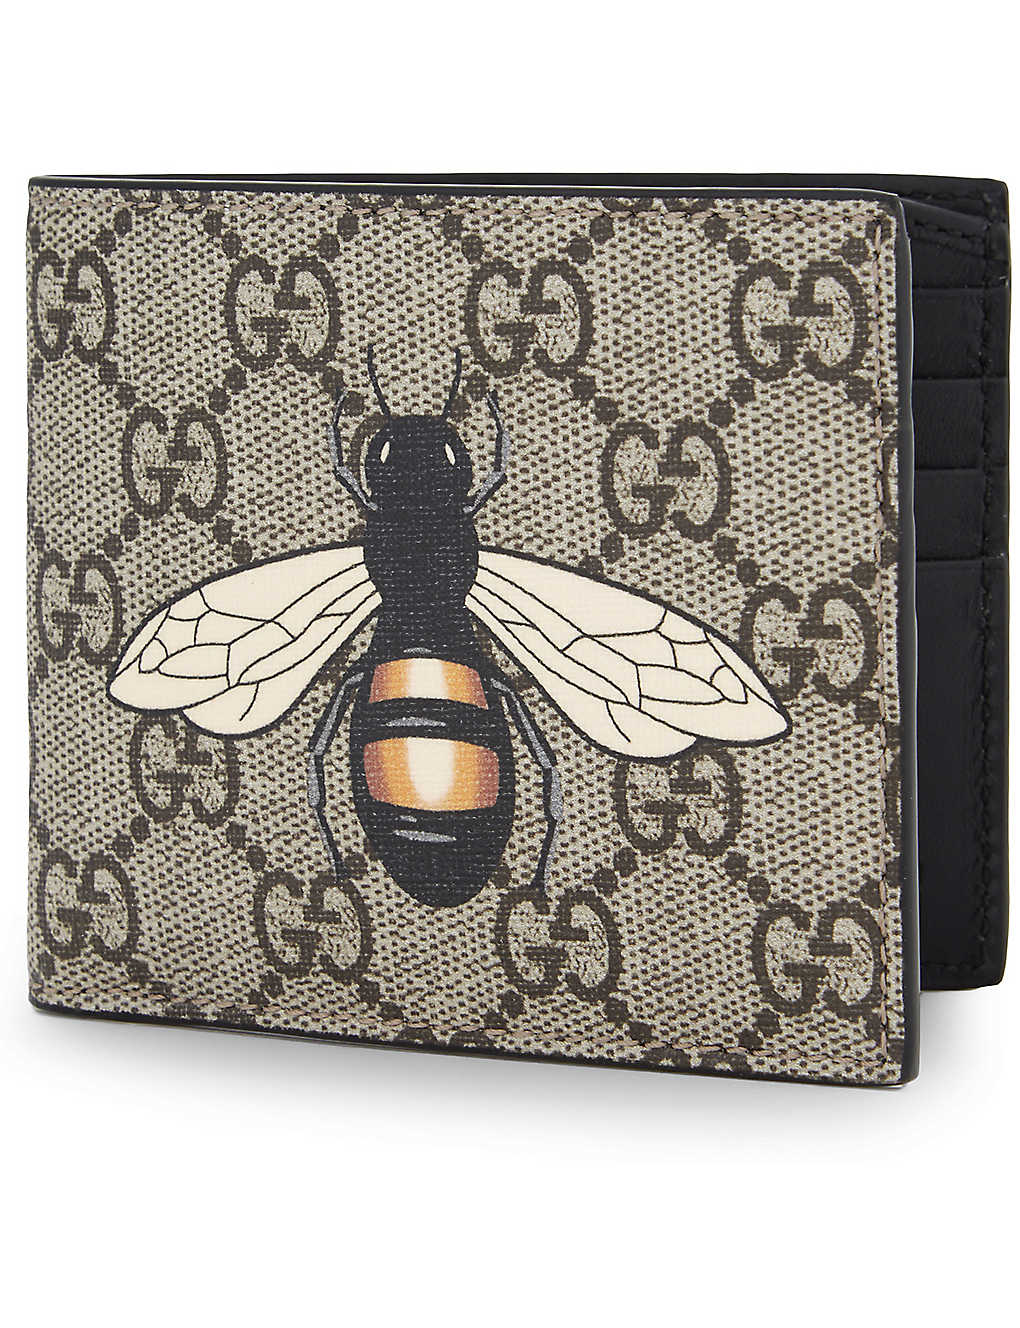 54045f231 GUCCI - Supreme bee leather billfold wallet | Selfridges.com